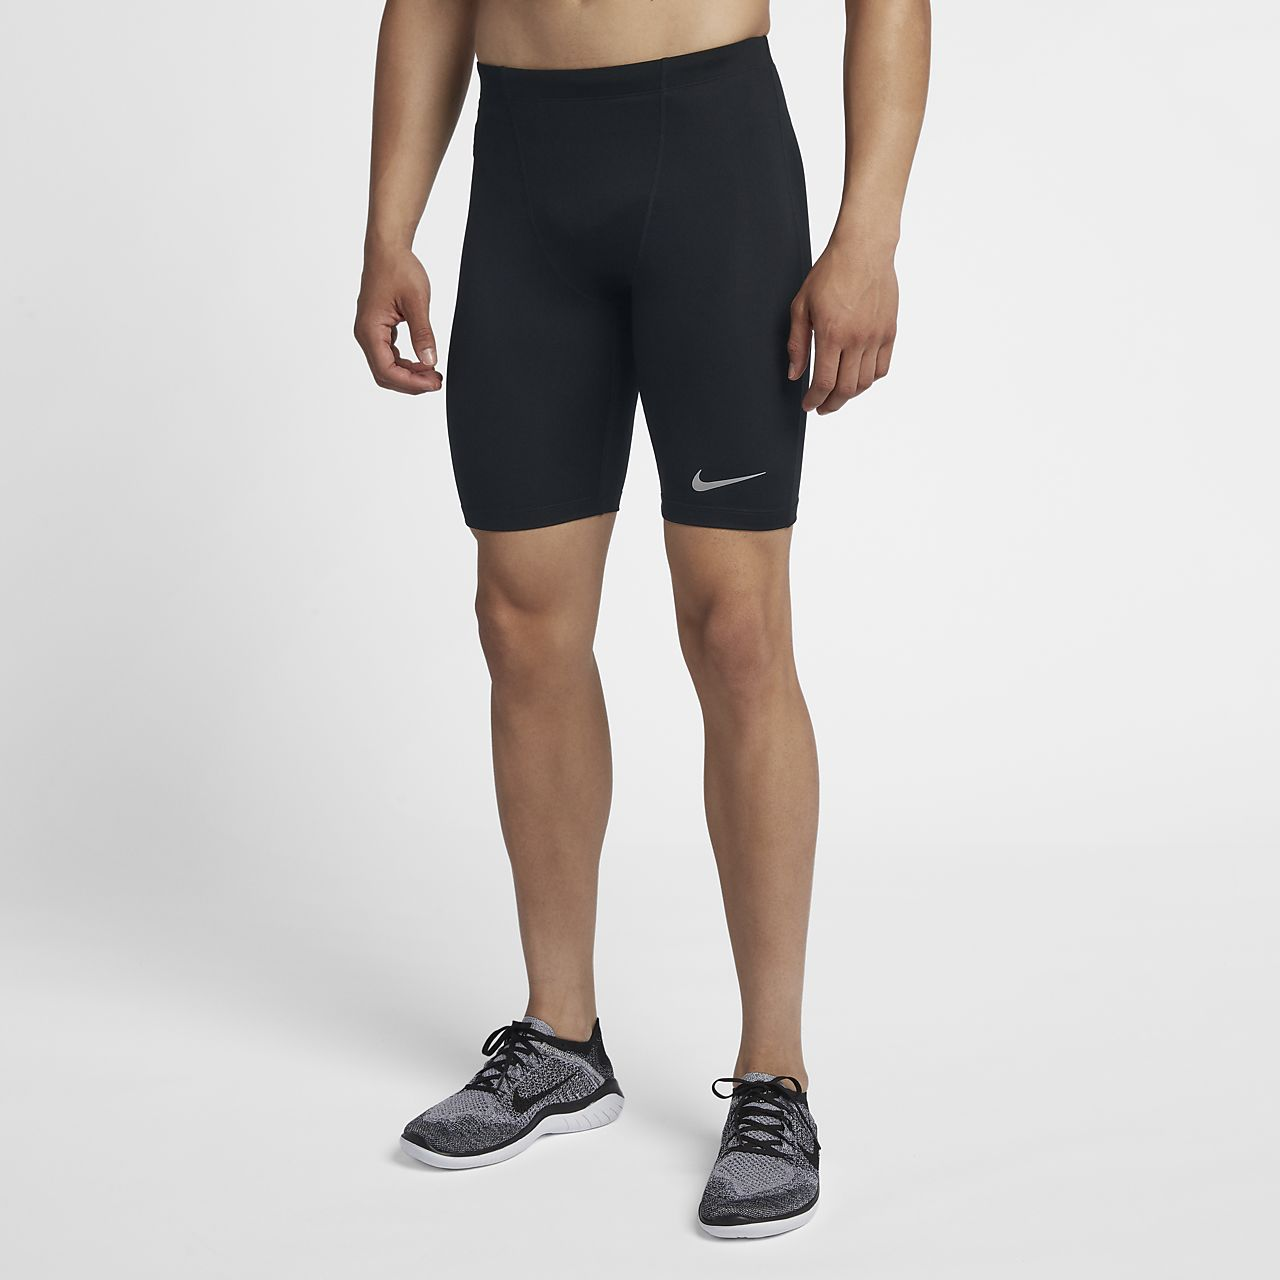 61b522dc7bb76 Nike Men's Running Half Tights. Nike.com SK